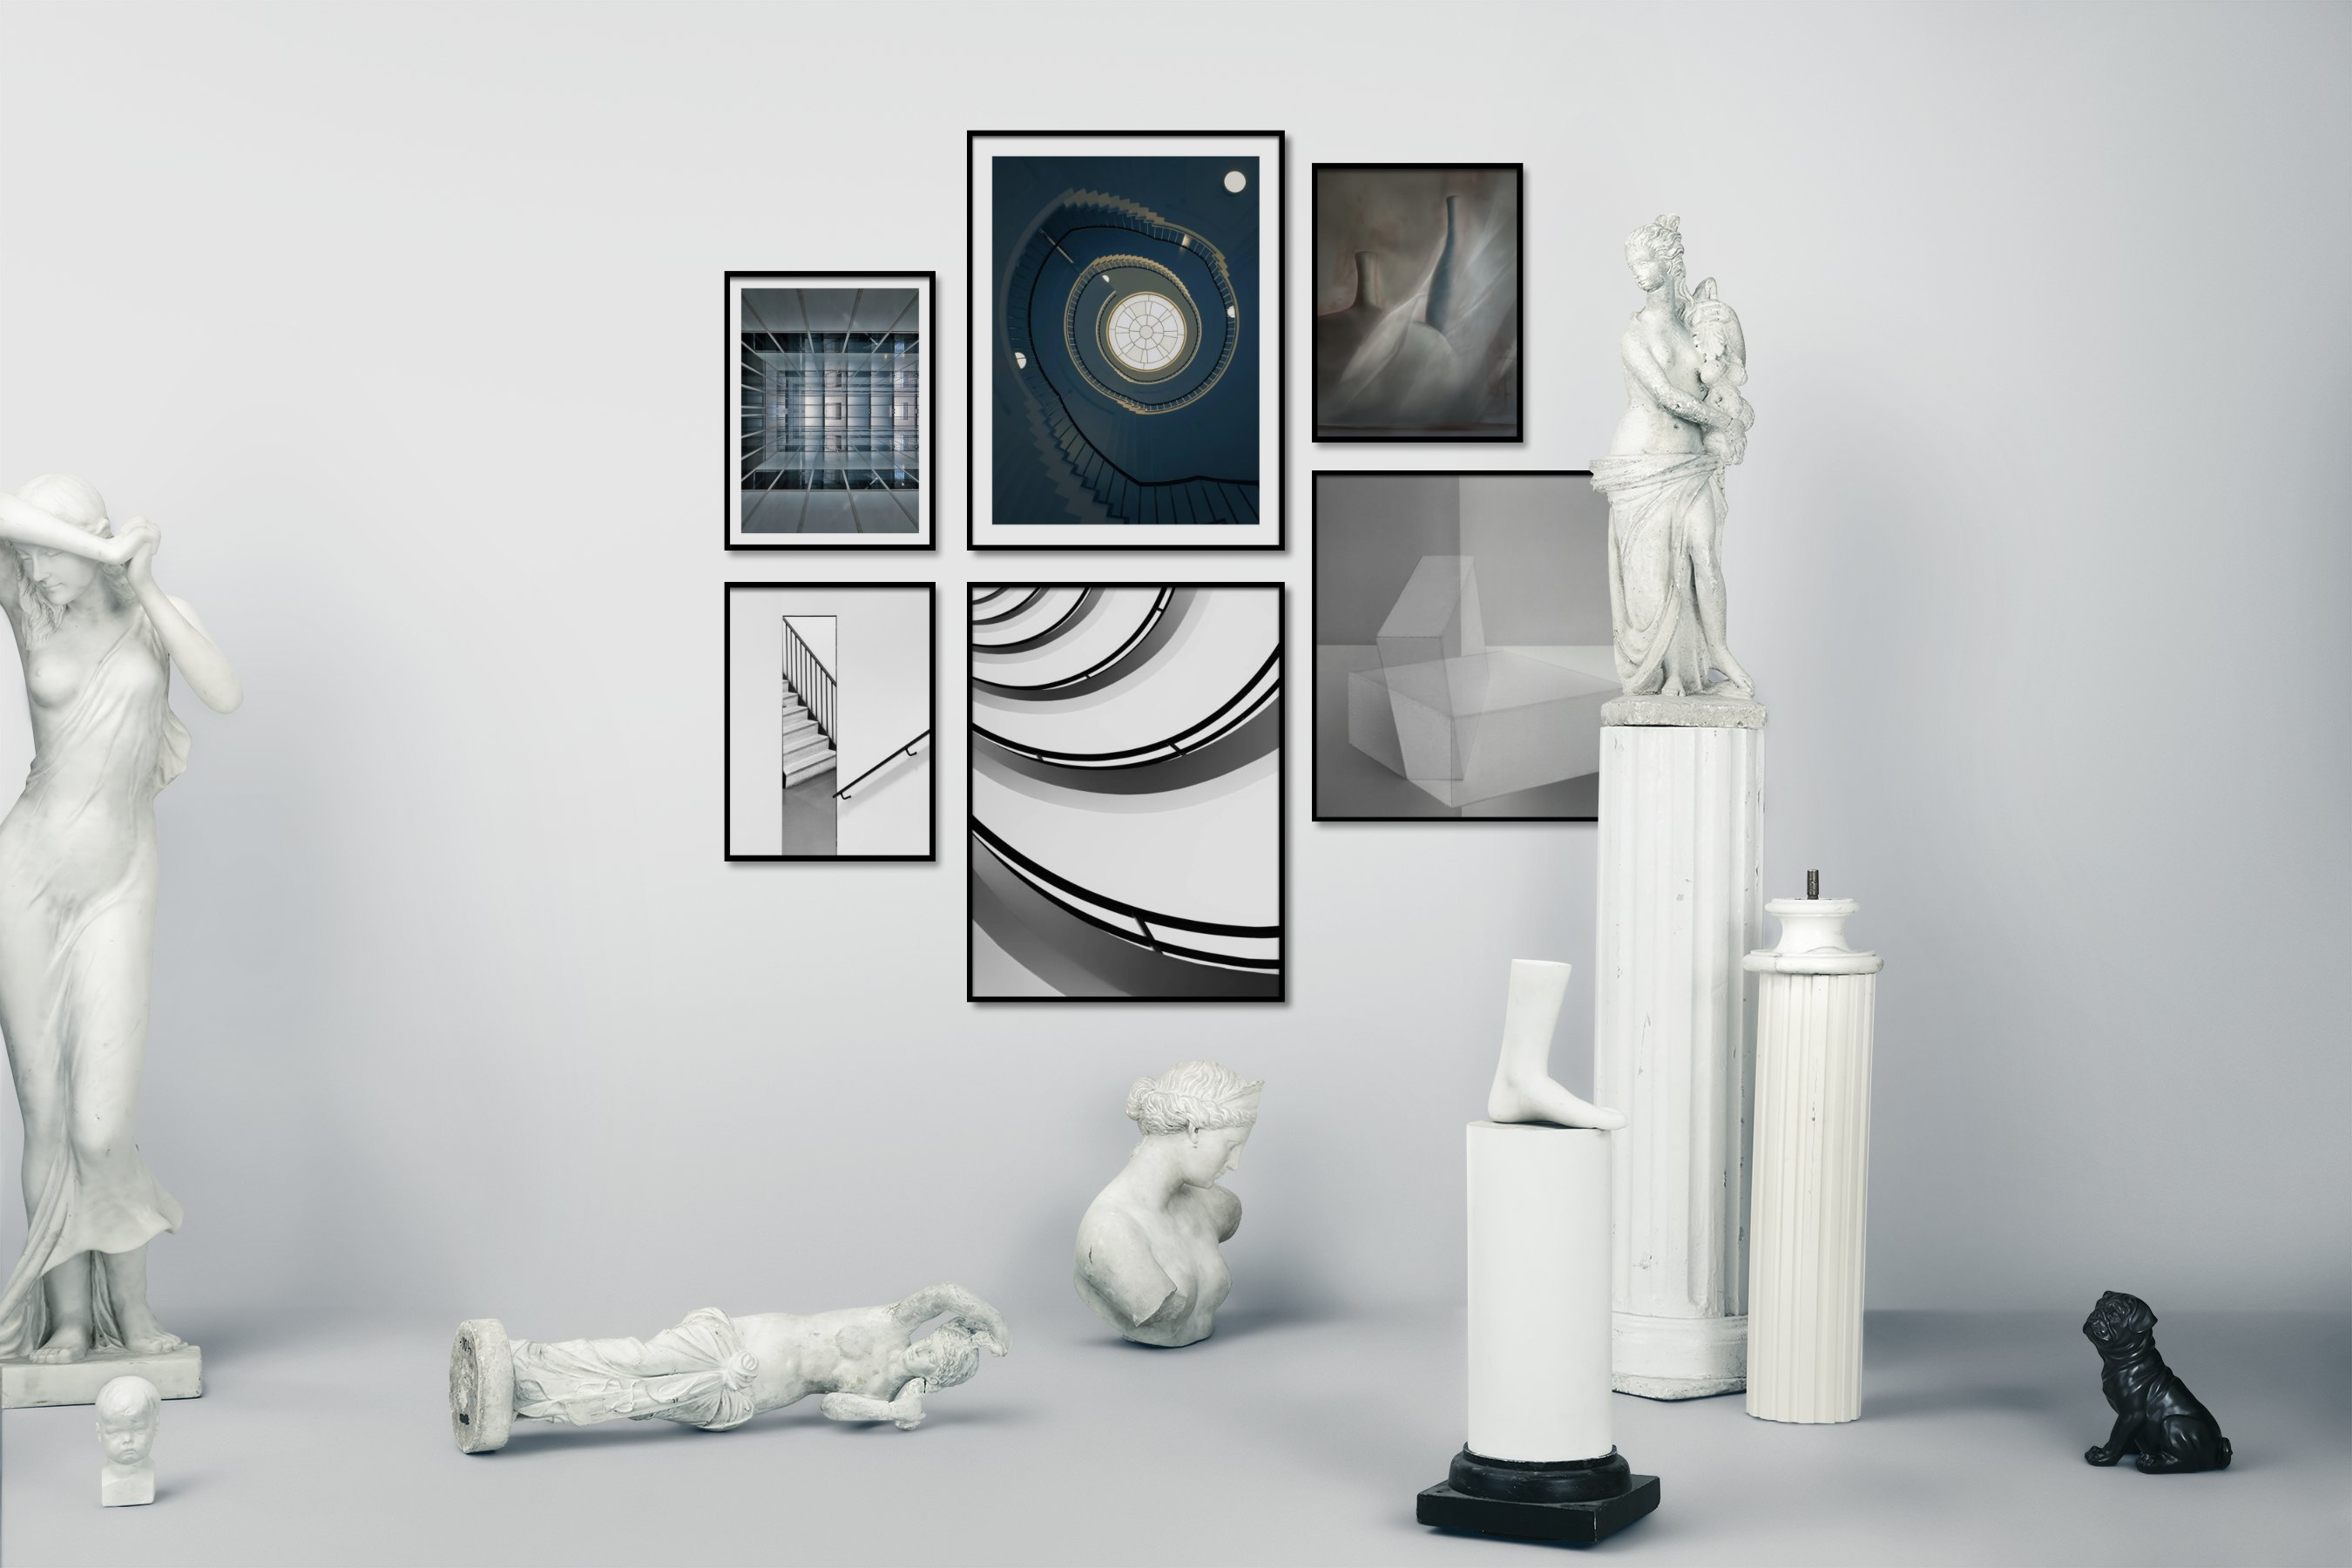 Gallery wall idea with six framed pictures arranged on a wall depicting For the Moderate, Black & White, and For the Minimalist